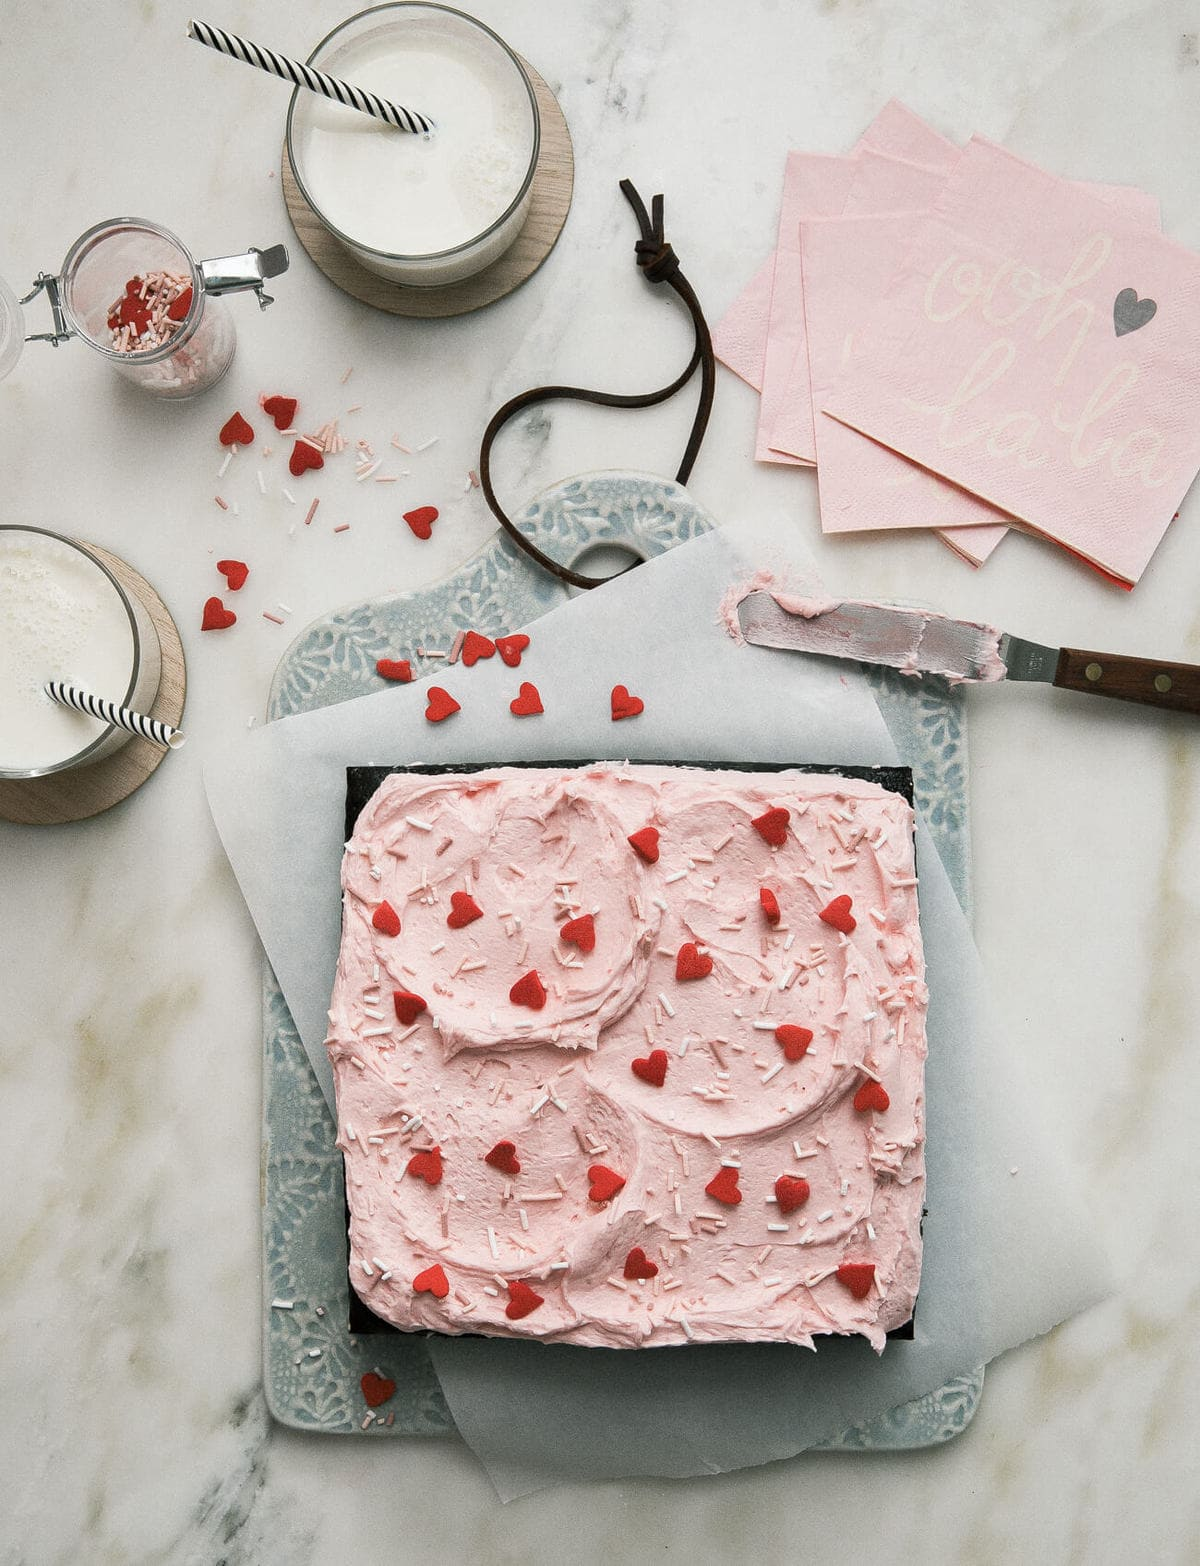 Mini Chocolate Sheet Cake for Two with Raspberry Frosting